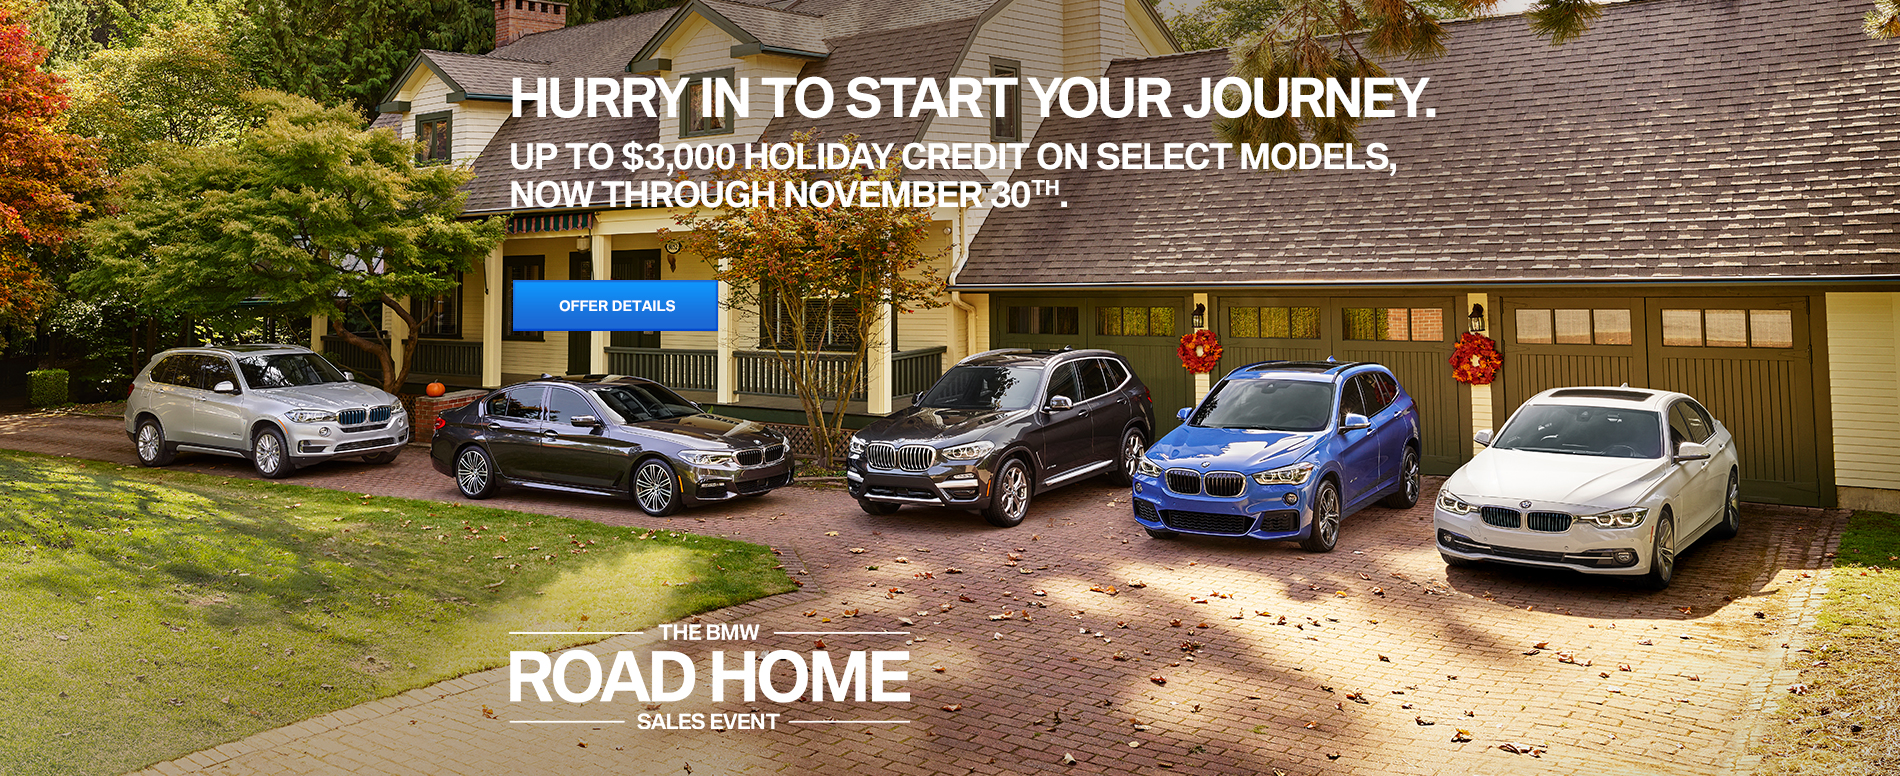 THE BMW ROAD HOME SALES EVENT